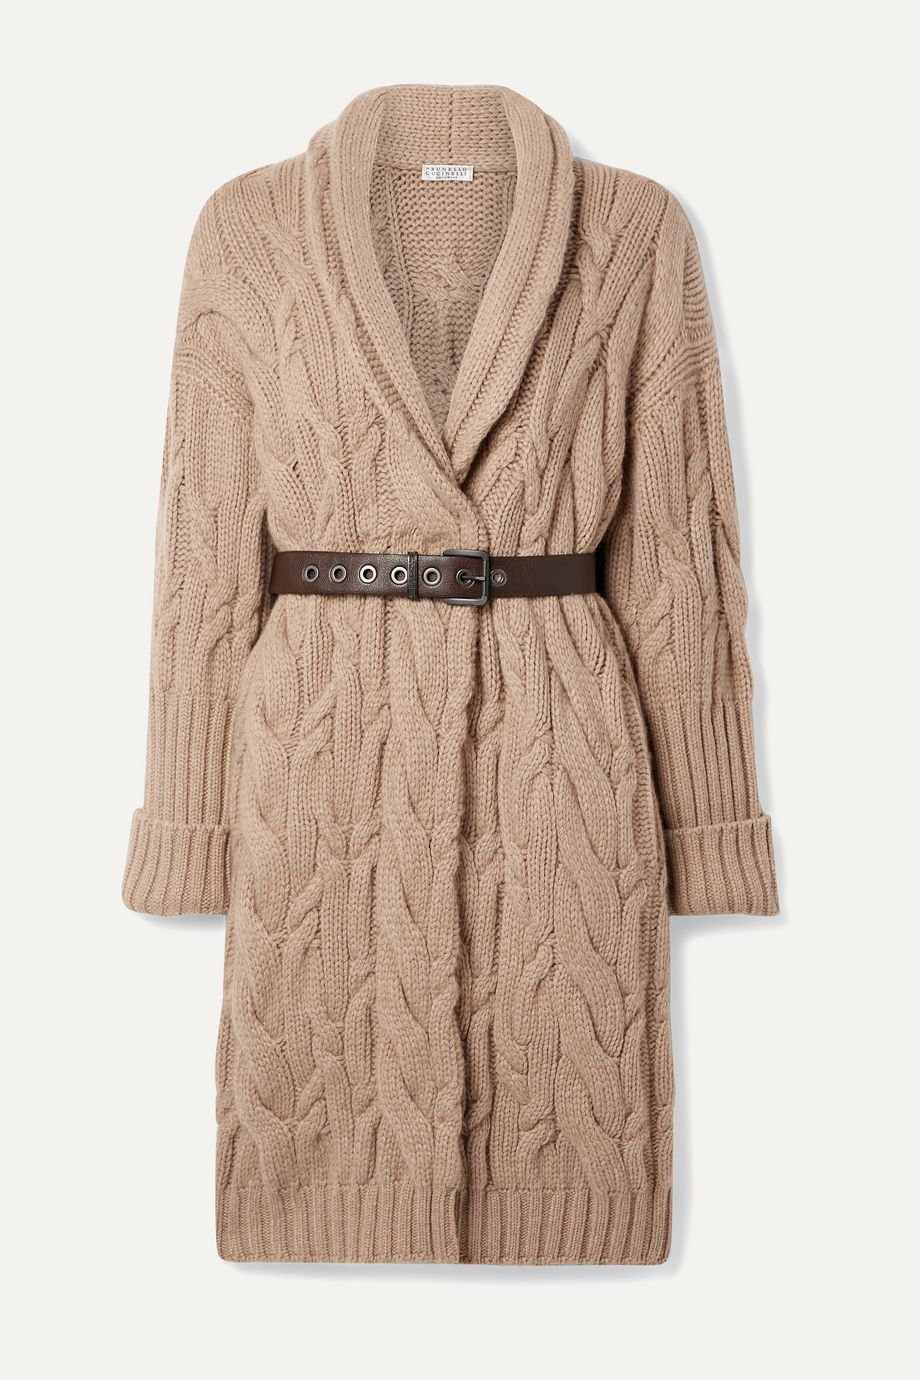 Brunello Cucinelli Oversized belted cable-knit cashmere cardigan